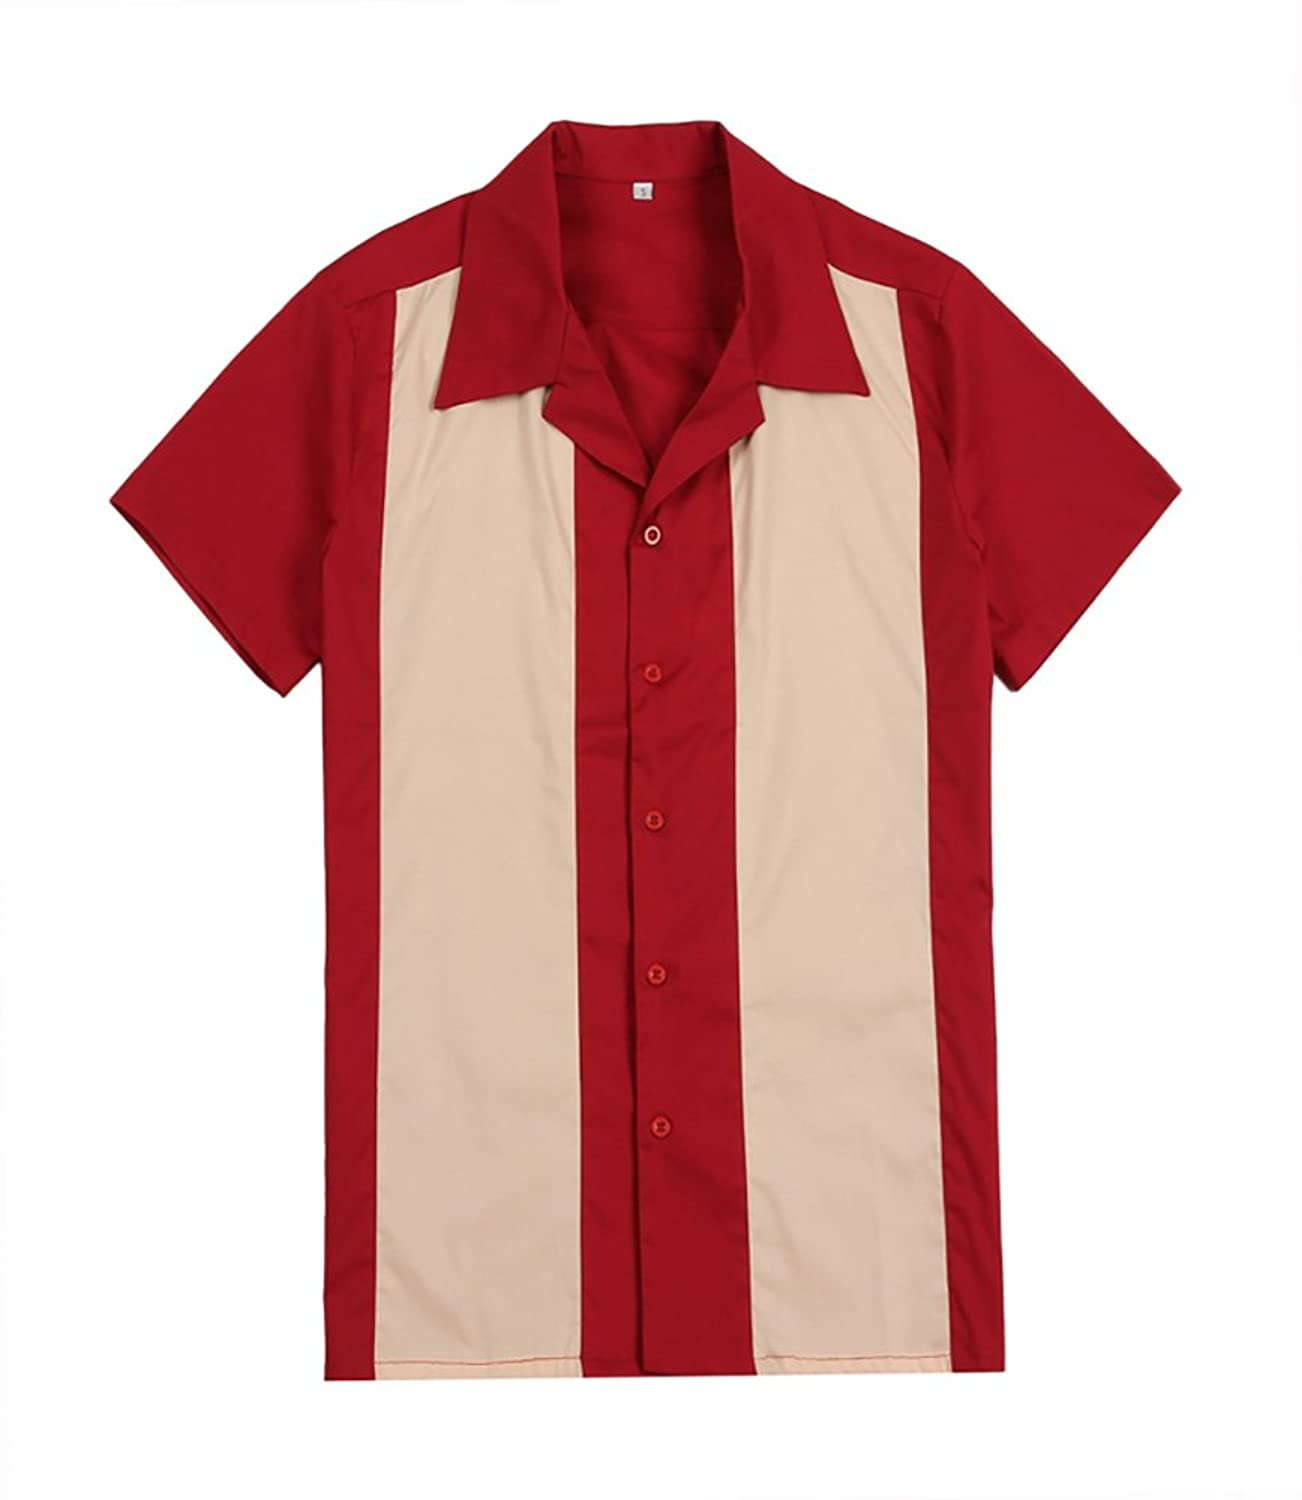 1950s Men's Shirt Styles – Dress Shirts to Casual Pullovers Mens Rockabilly Vintage 50s Clothing Short Sleeve Bowling Shirts Red Cream $24.71 AT vintagedancer.com